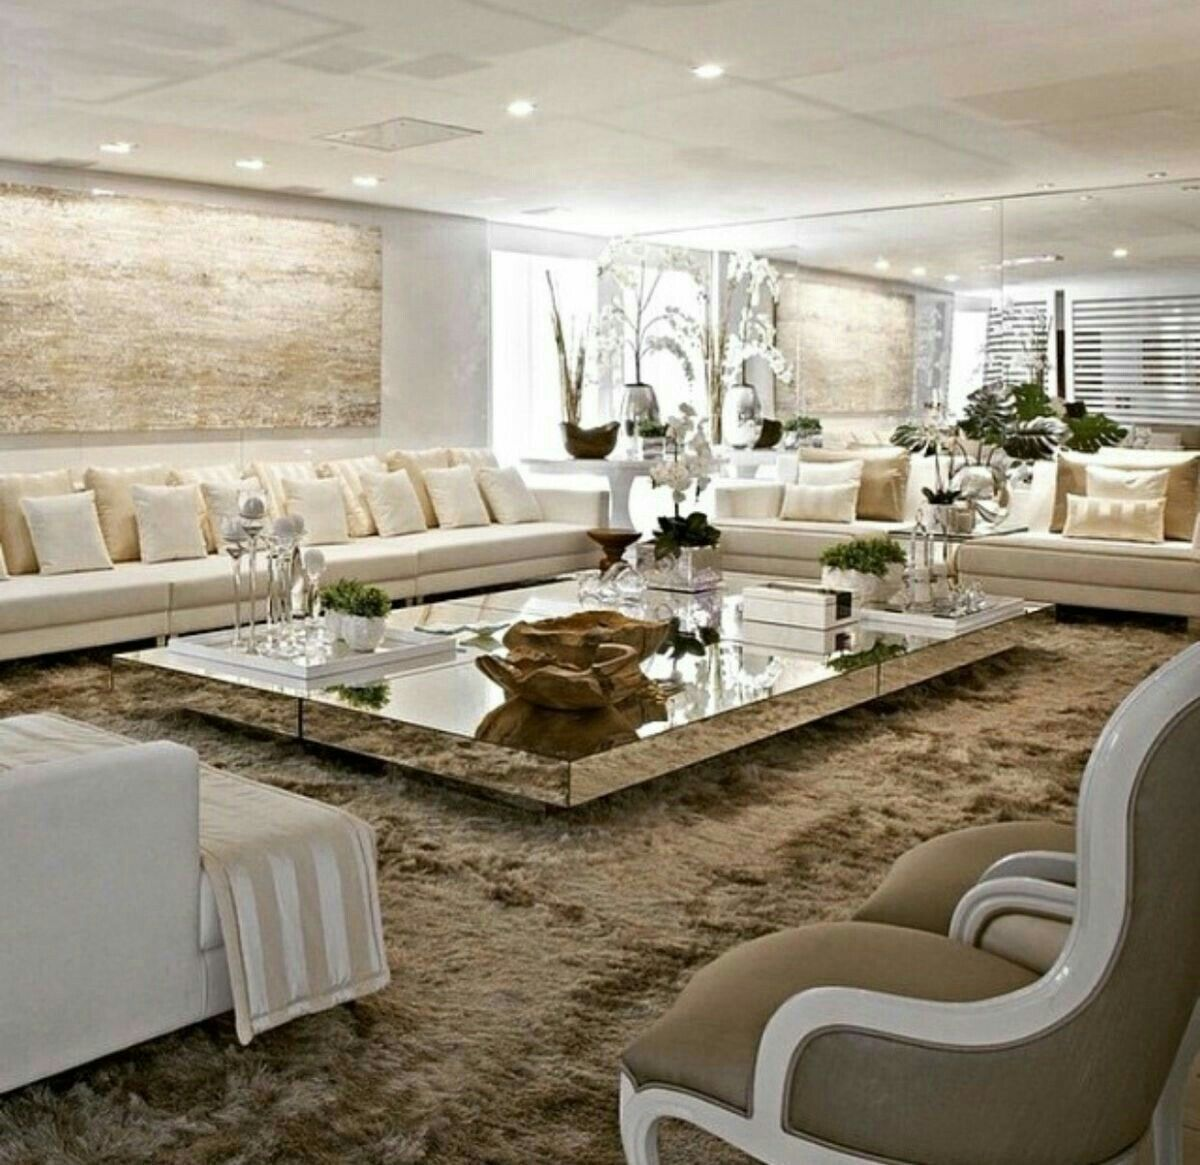 The Best Inspirations For Interior Design Are On The Luxxu